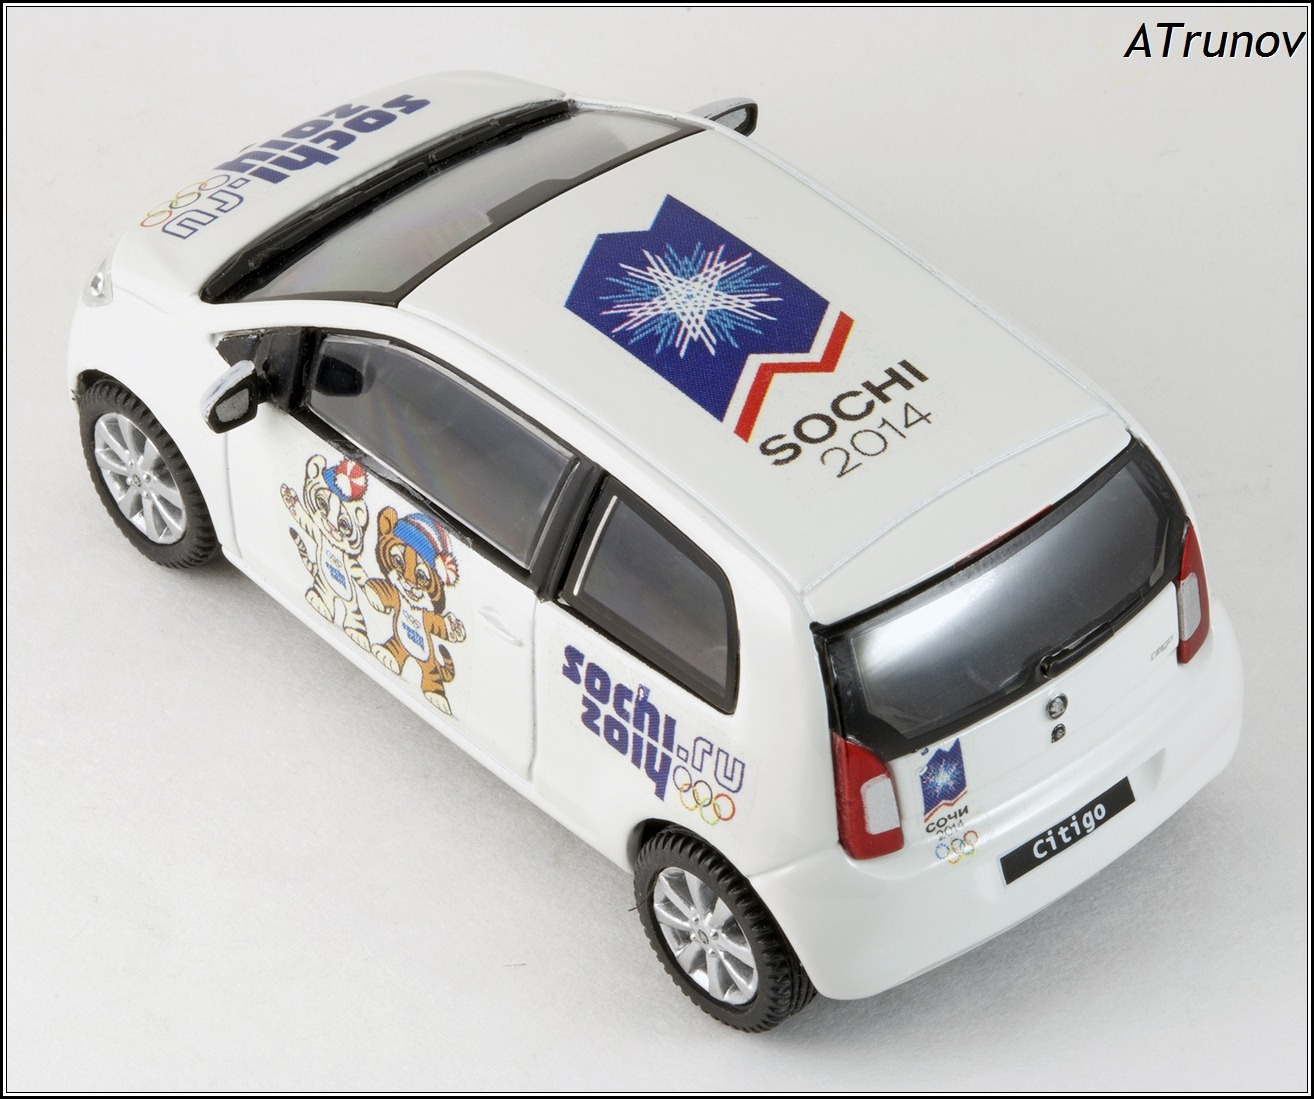 Abrex: 2011 Skoda Citigo Sochi 2014 Olympic - White (143AB-021E) in 1:43 scale . Picture provided by Natty, 2015-01-13 01:29:26